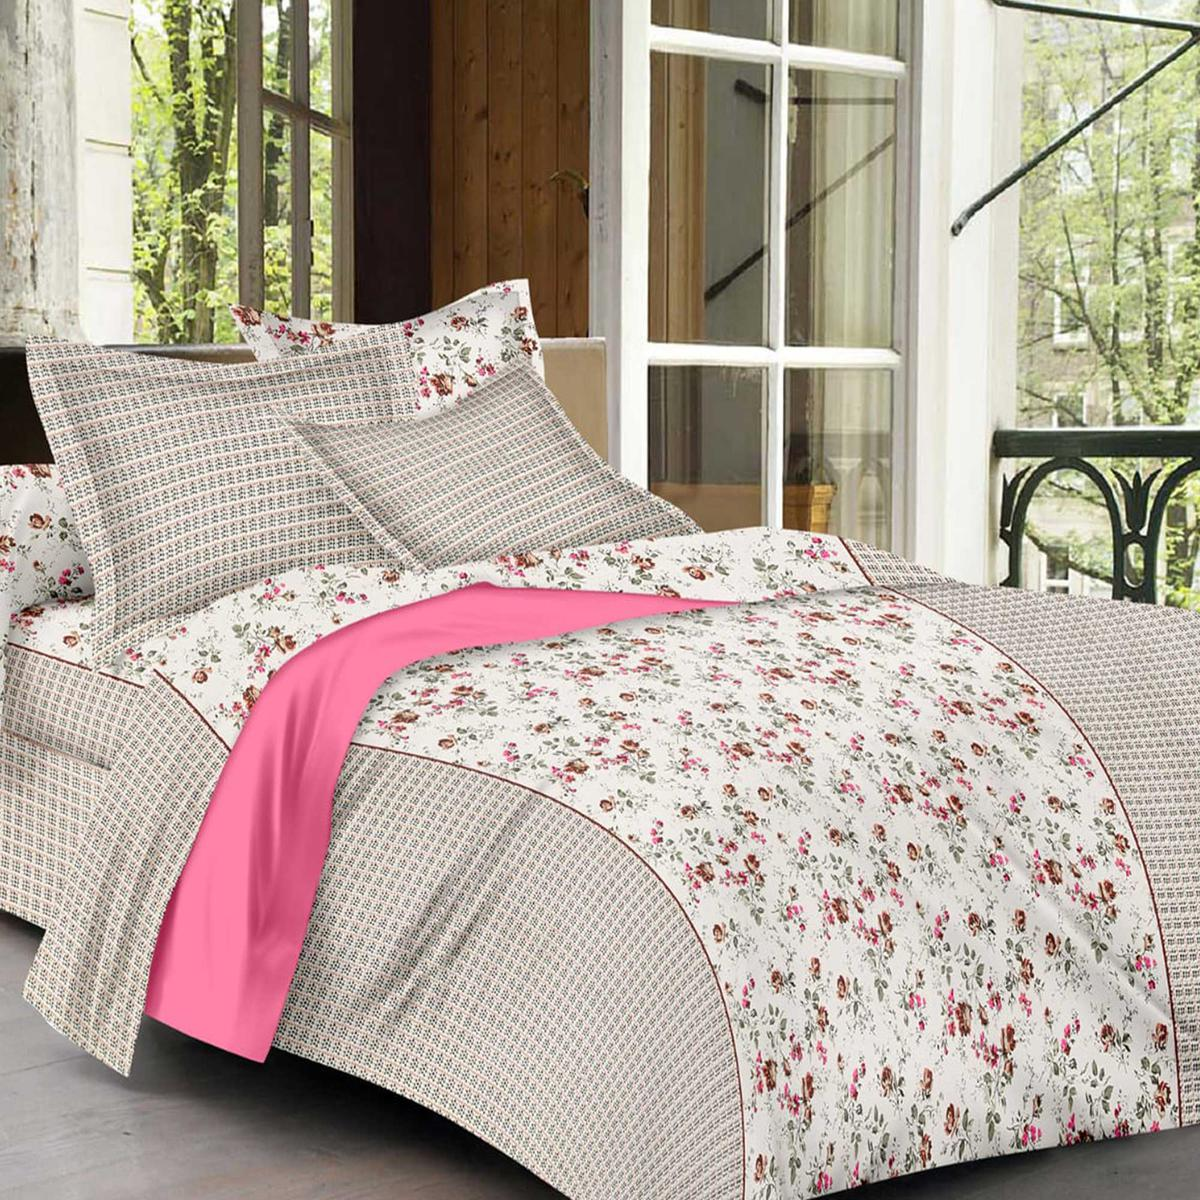 Magnetic Cream Colored Floral Print Cotton King Size Bedsheet with 2 Pillow Cover